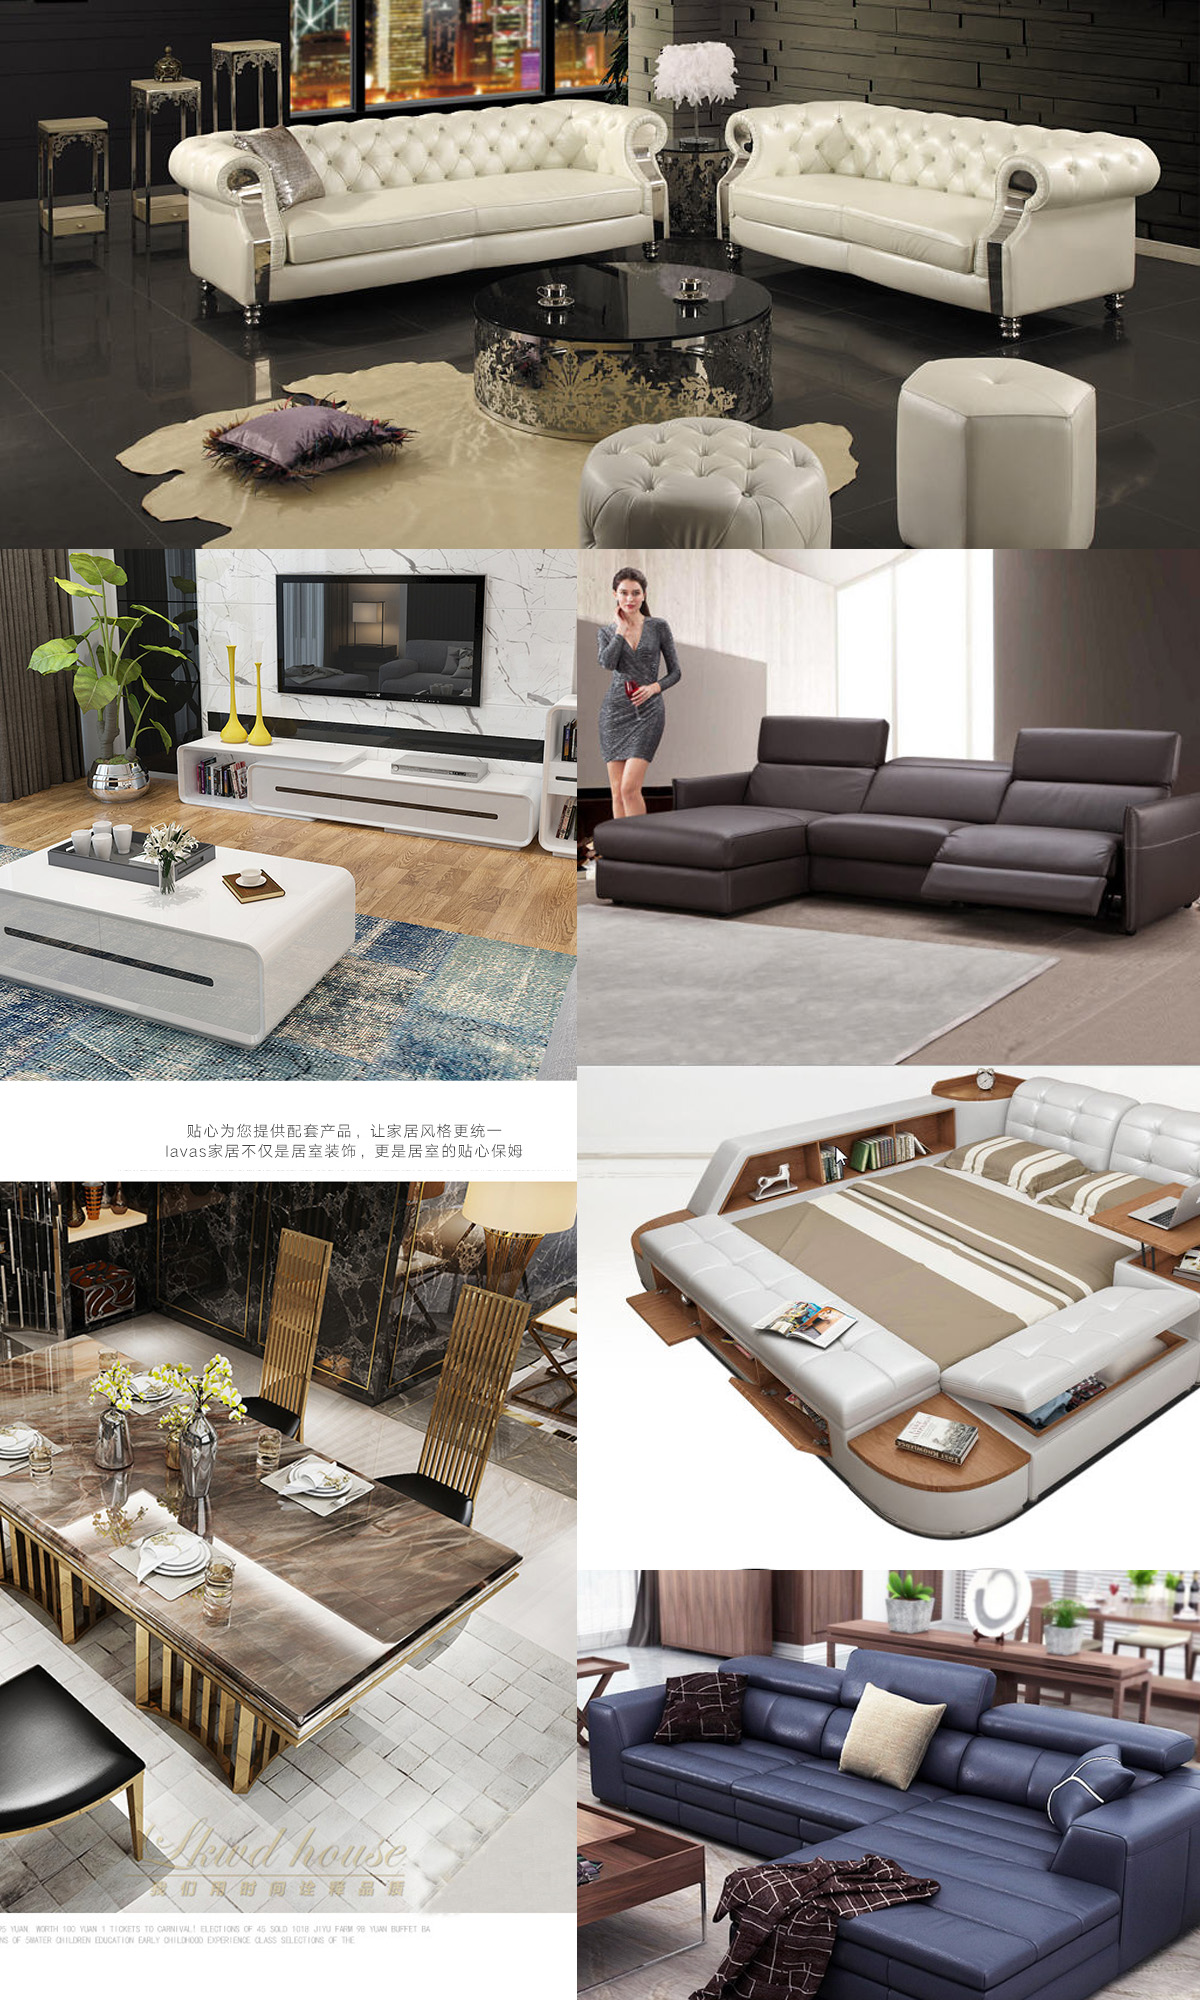 Sofa And More Club Jixinge Bed Small Orders Online Store Hot Selling On Aliexpress Com